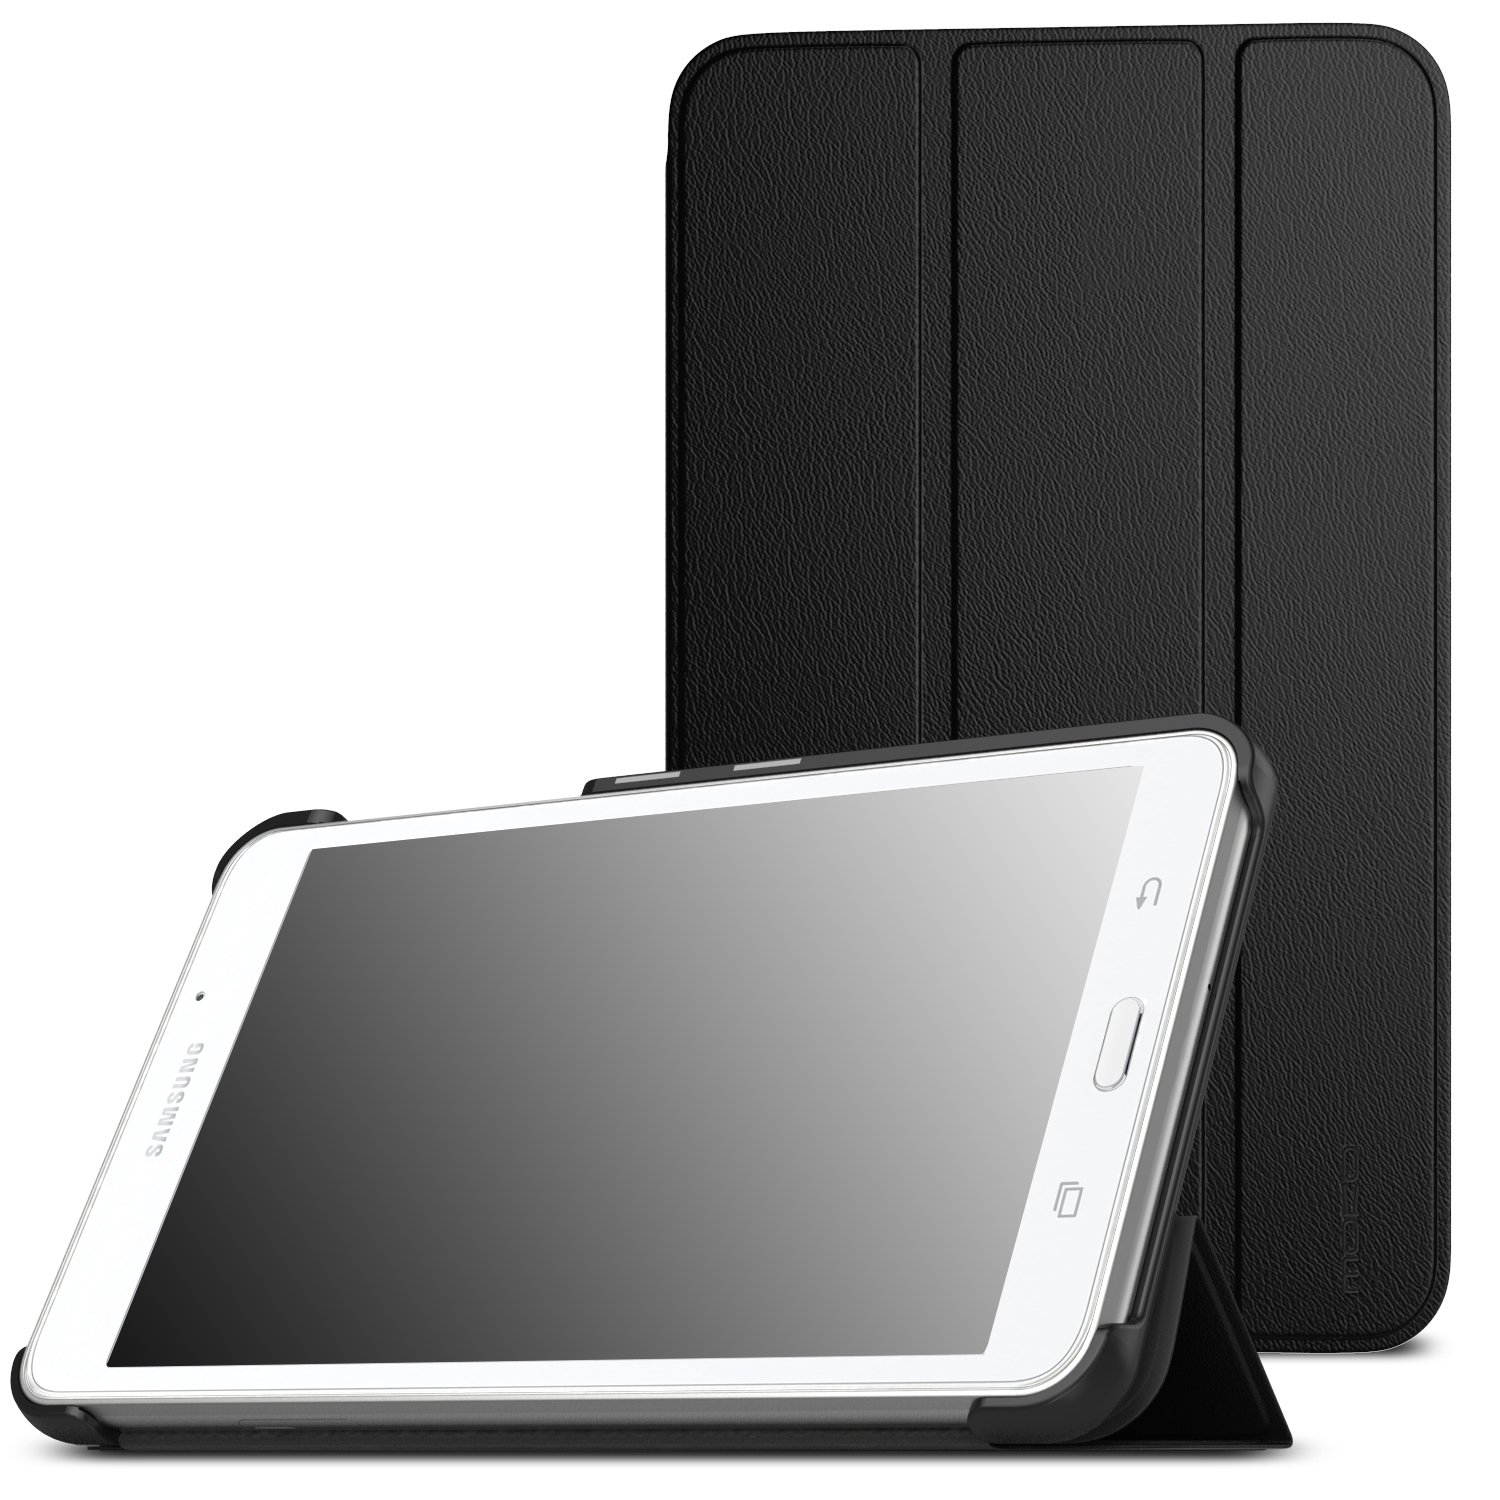 MoKo Samsung Galaxy Tab A 7.0 Case - Ultra Lightweight Slim-Shell Stand Cover Case for Samsung Galaxy Tab A 7.0 Inch Tablet 2016 Release(SM-T280 / SM-T285 Version ONLY), Black